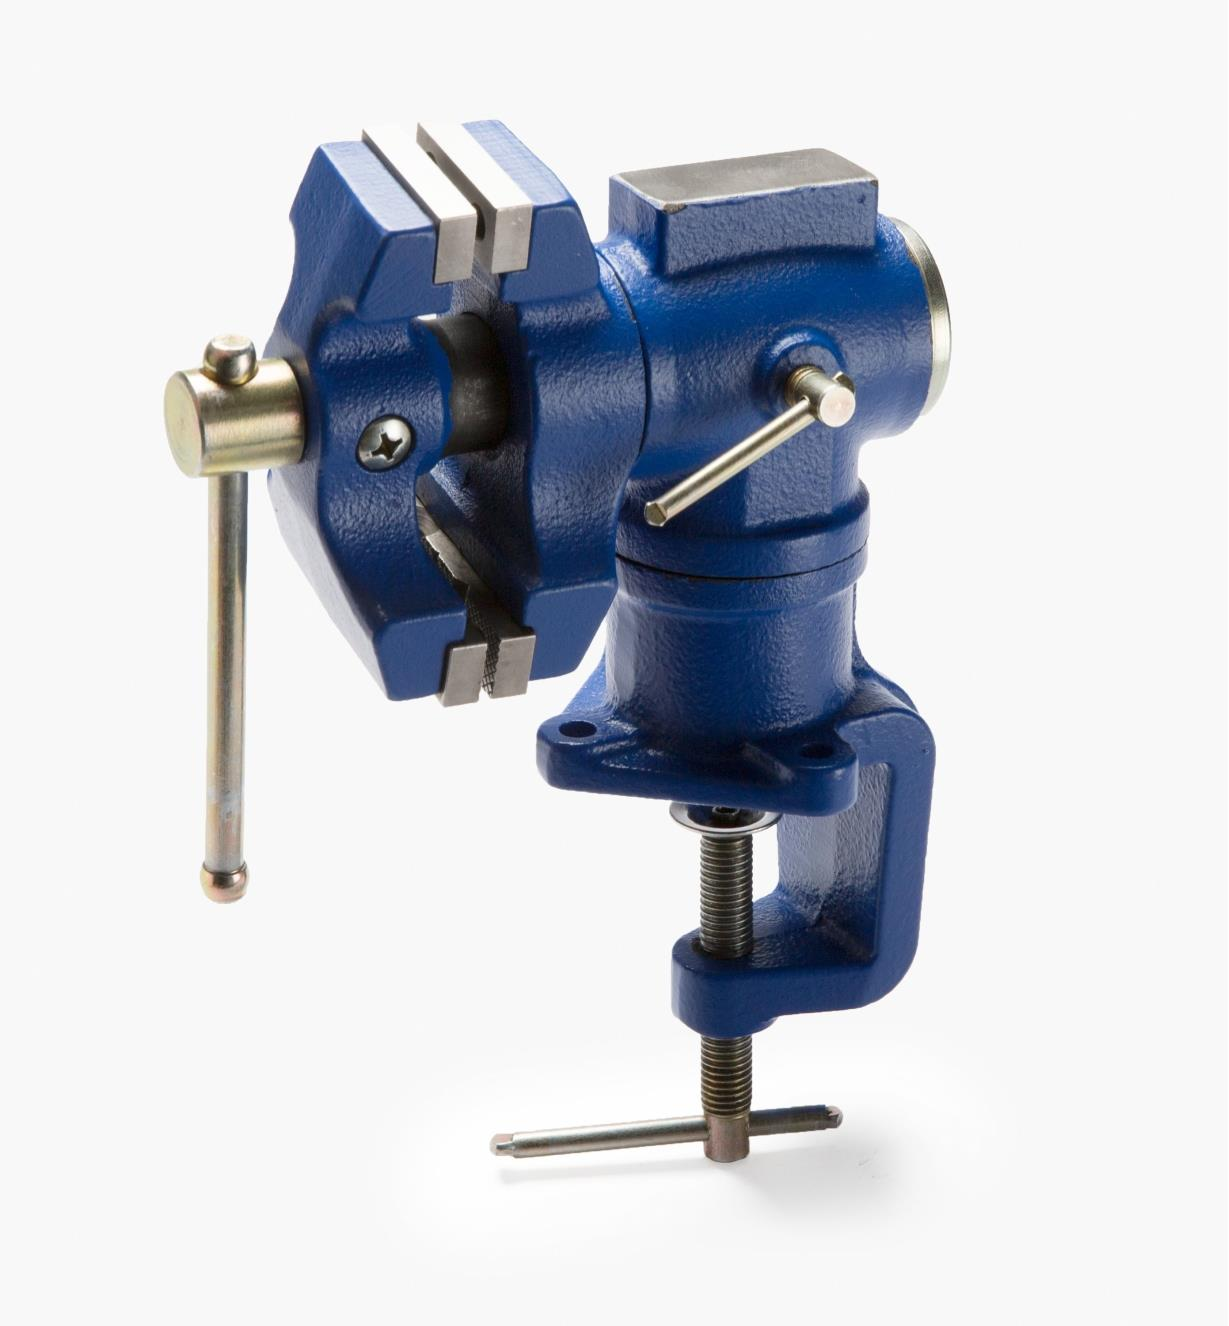 70G0102 - Clamp-On Articulating Vise